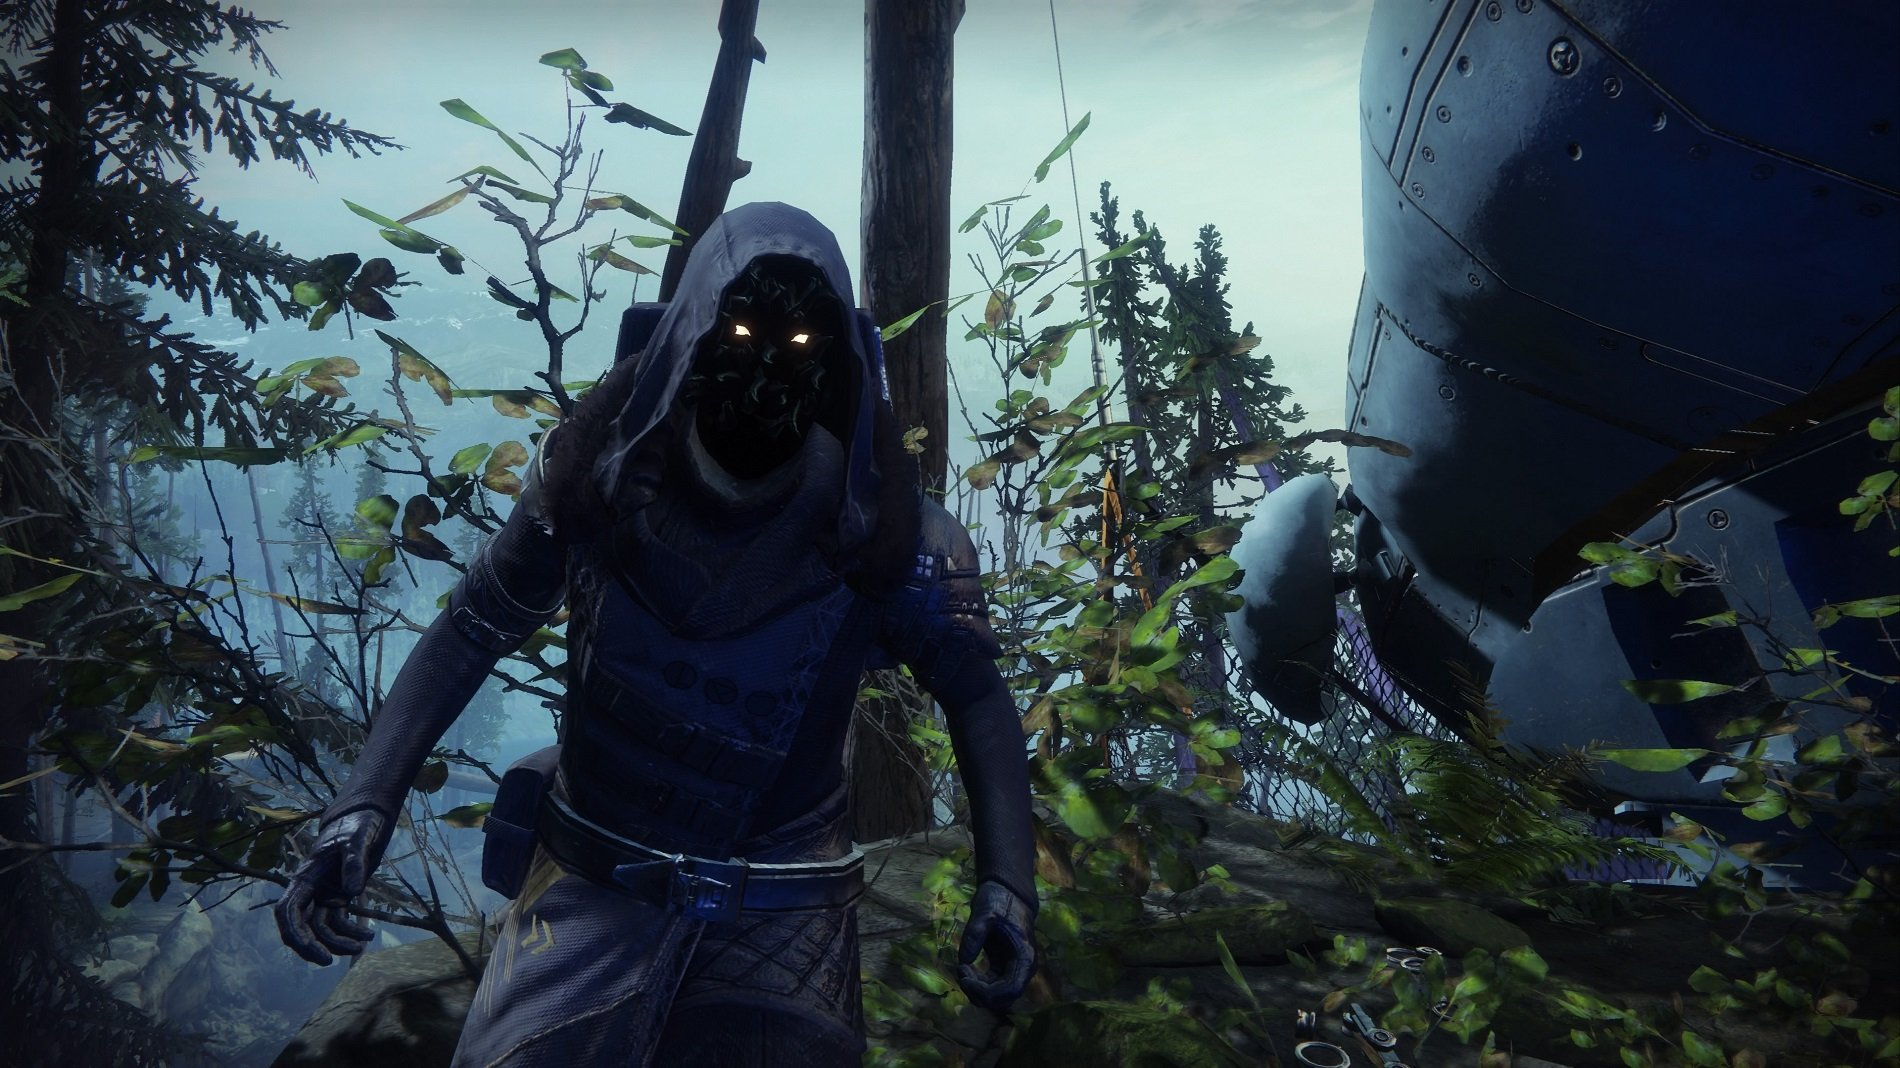 Where to find Xur in Destiny 2 - June 19, 2020